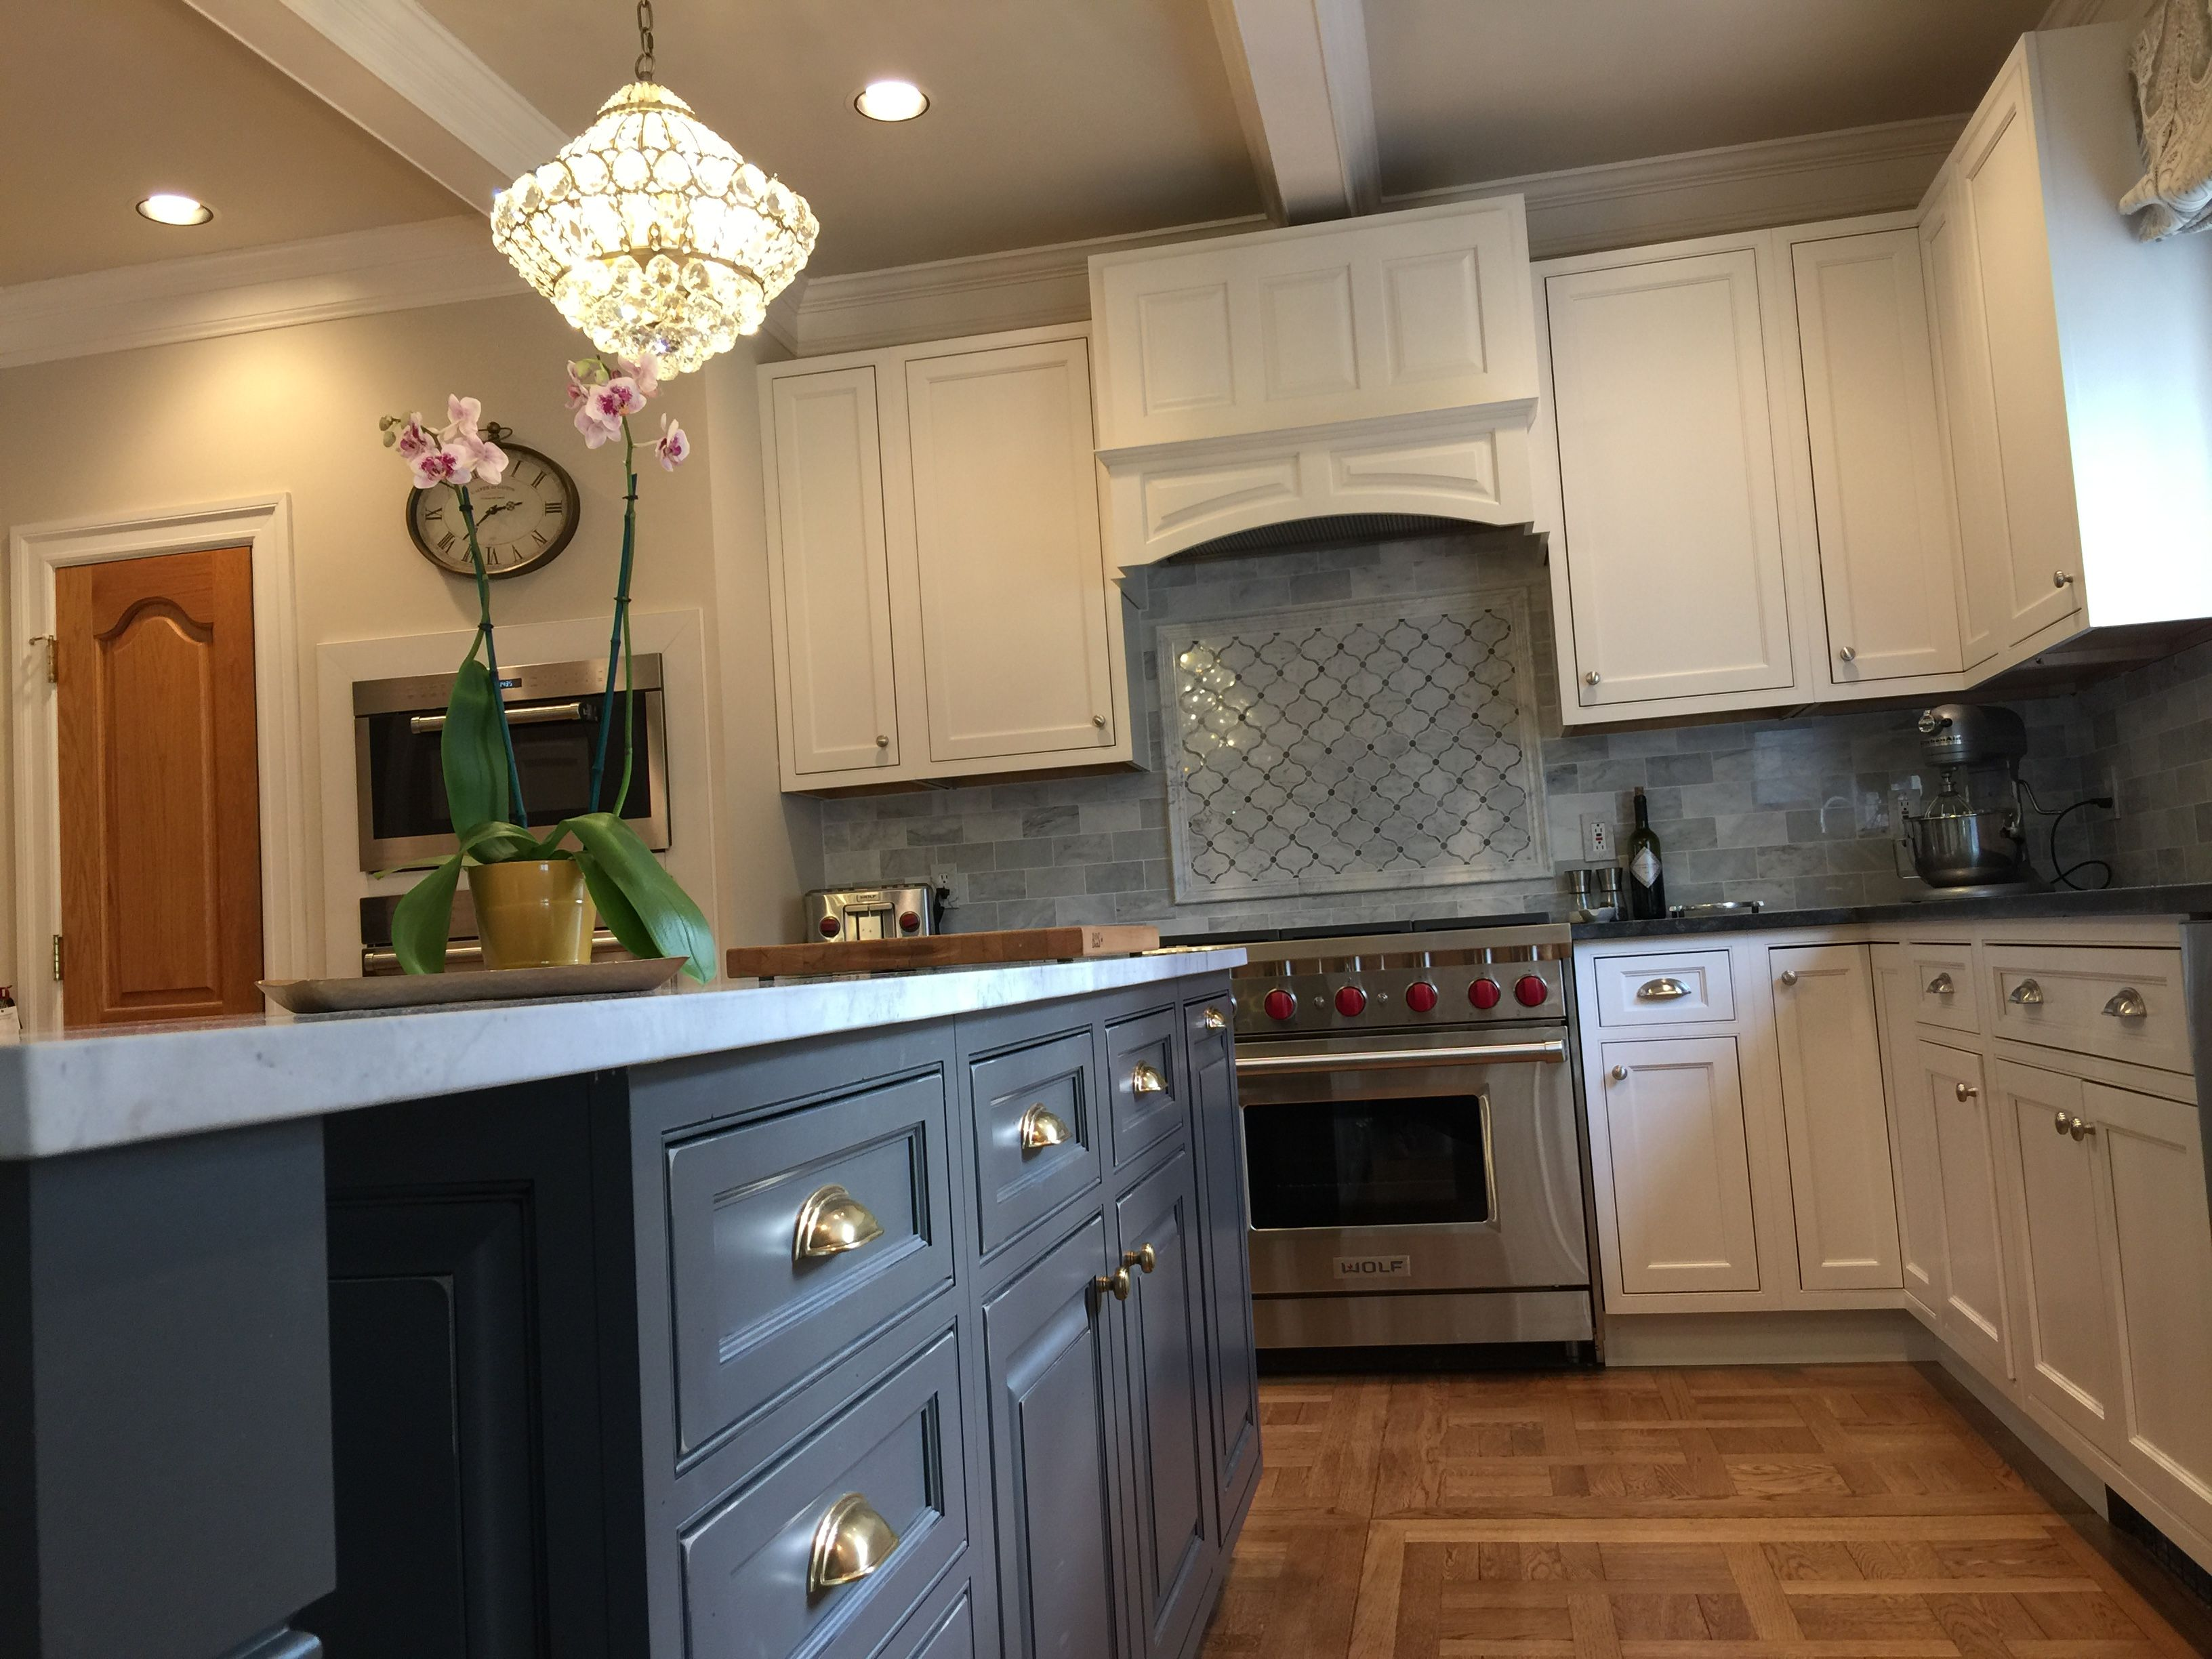 Starmark Cabinetry With A Painted Marshmallow Cream Tinted Varnish In The Kitchen Cabinet Interior Kitchen Cabinets Design Layout Kitchen Cabinet Door Styles